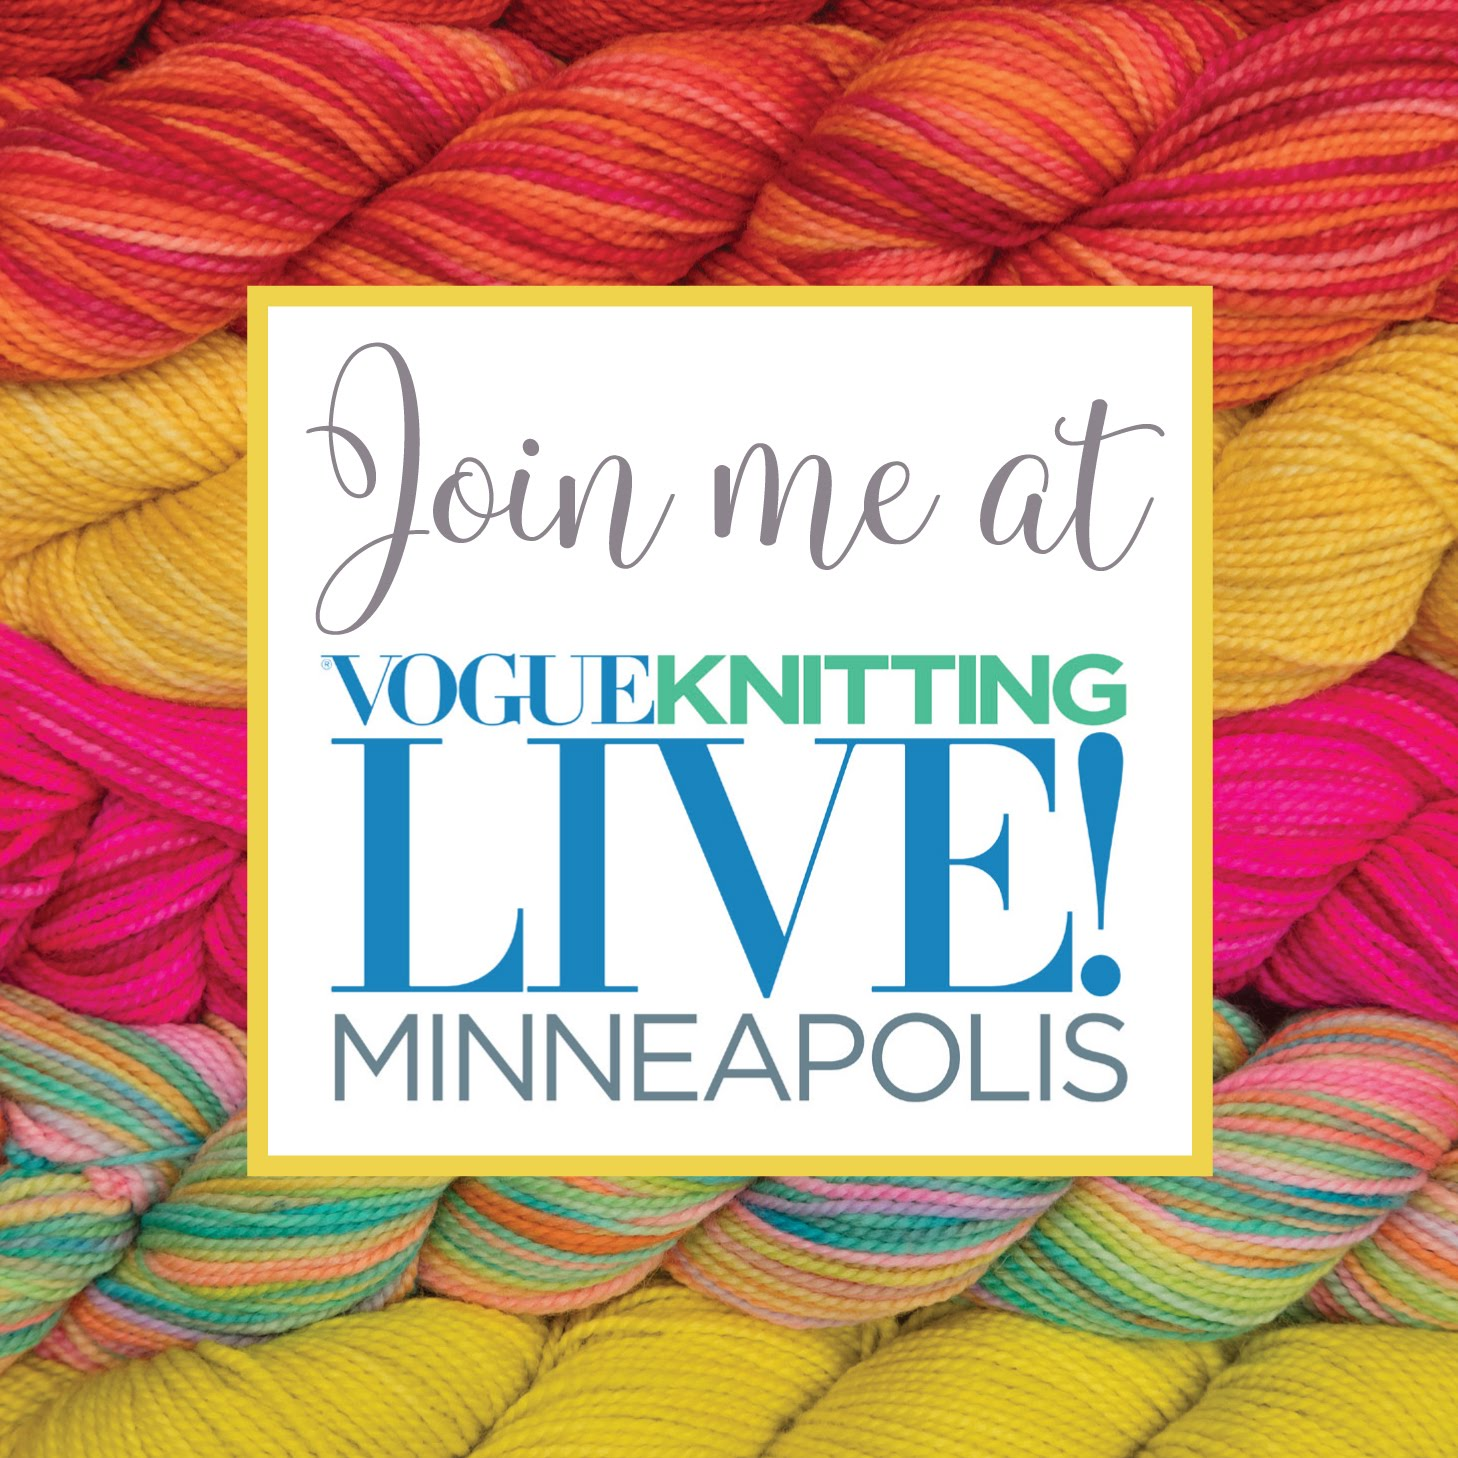 Vogue Knitting Live Minneapolis!